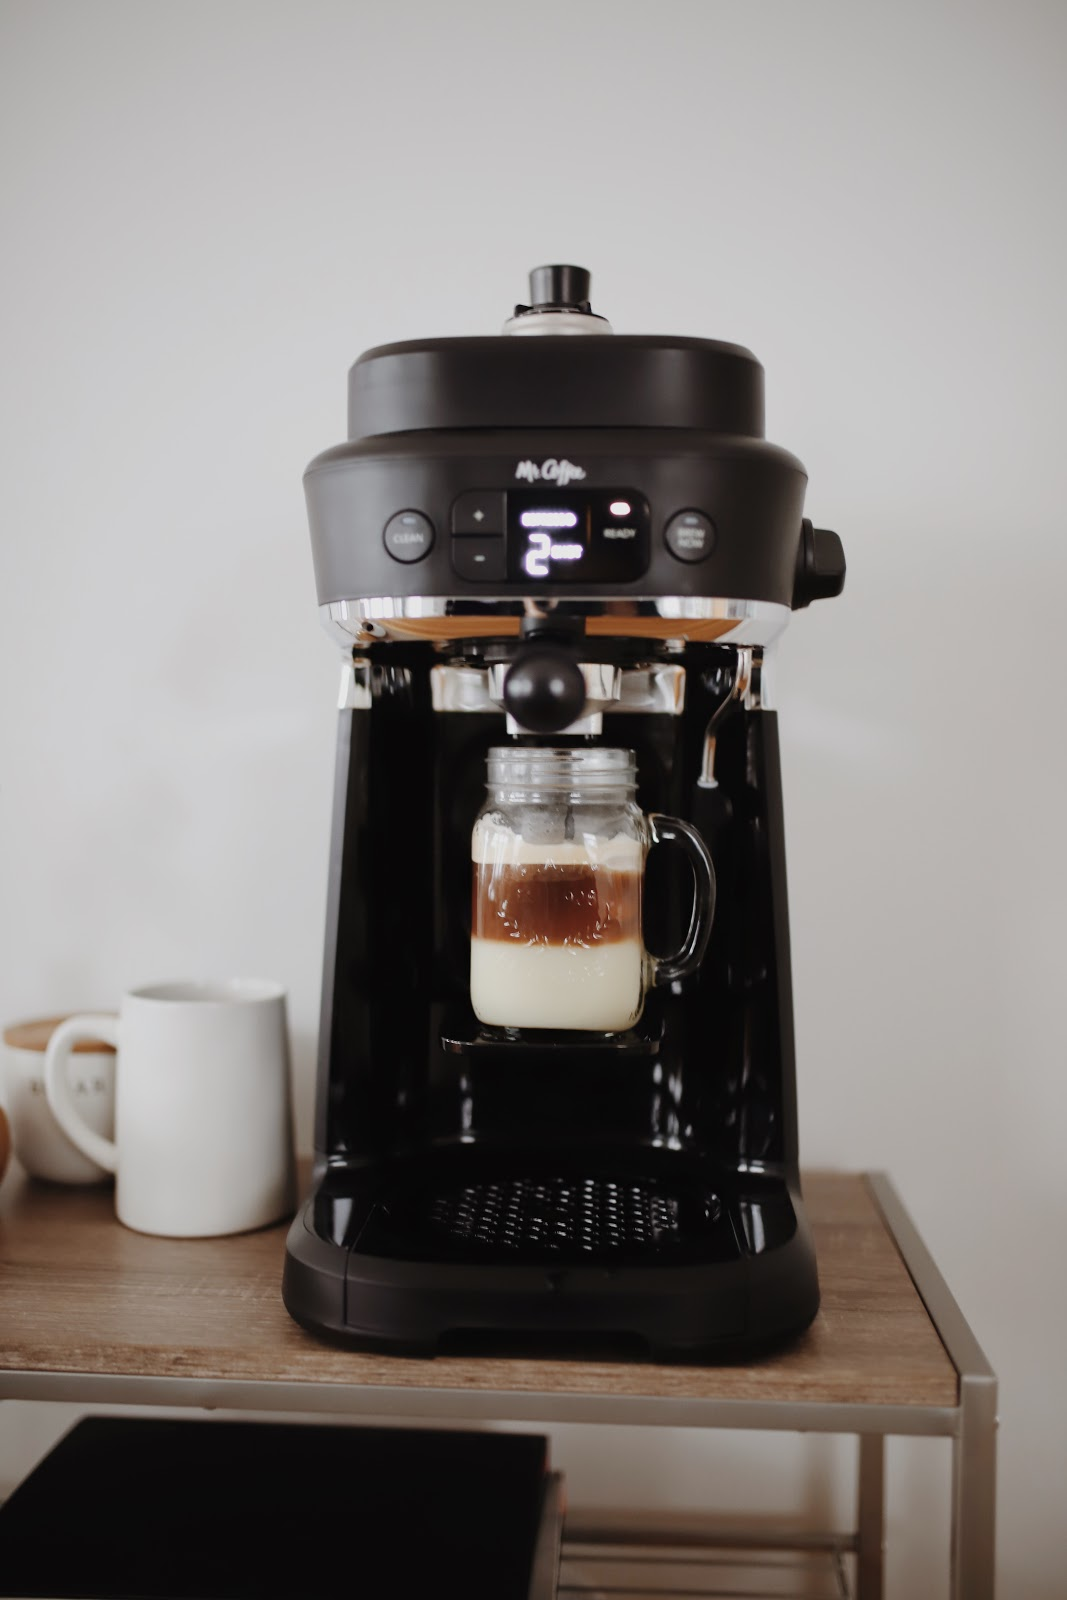 Mr. Coffee All-In-One Coffee Maker | STYLED & SMITTEN